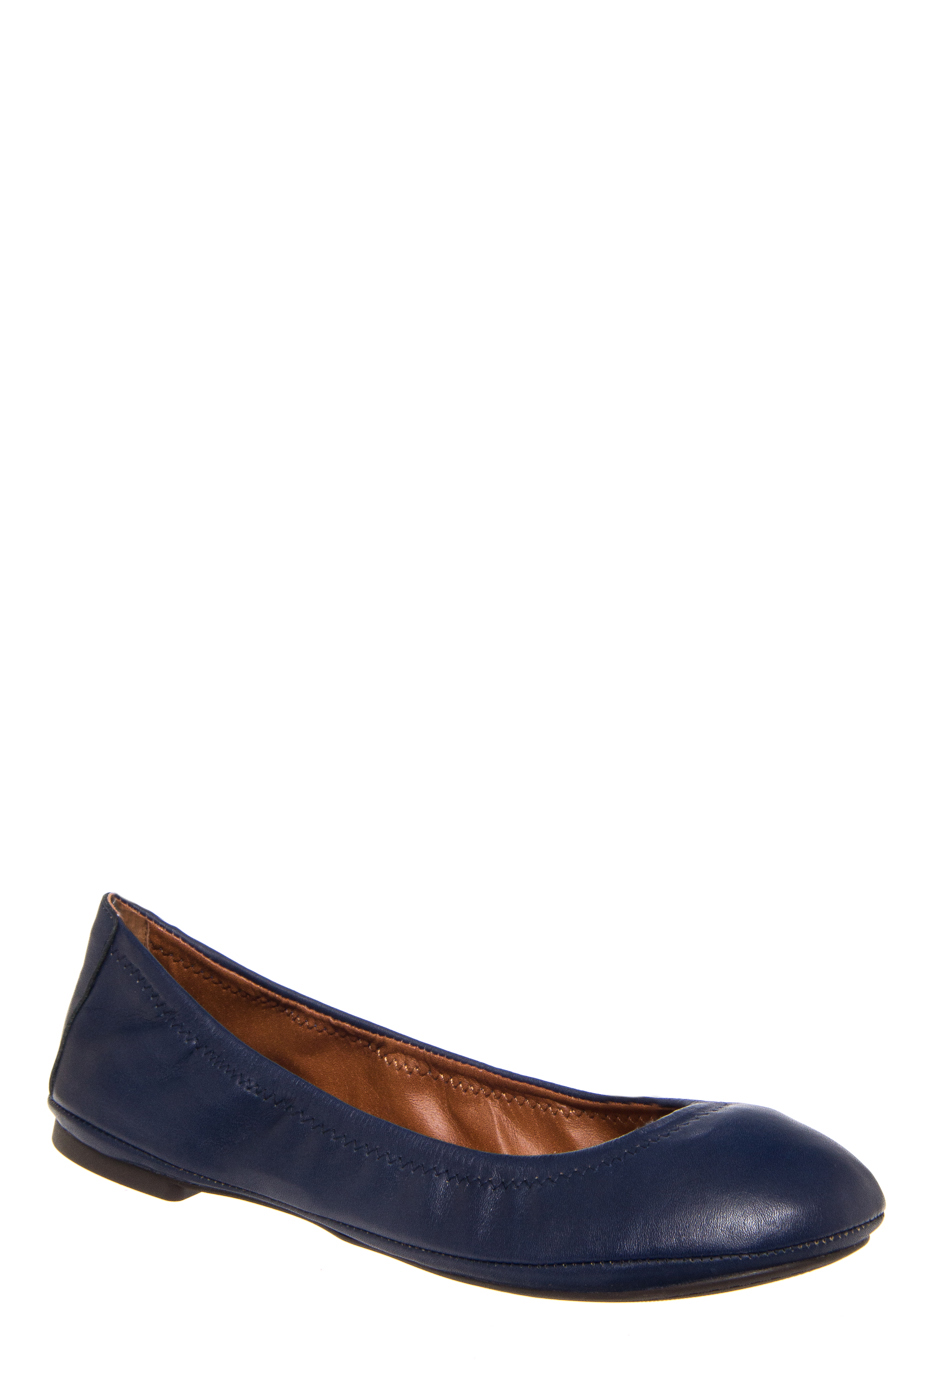 Lucky Brand Emmie 2 Flats - American Navy